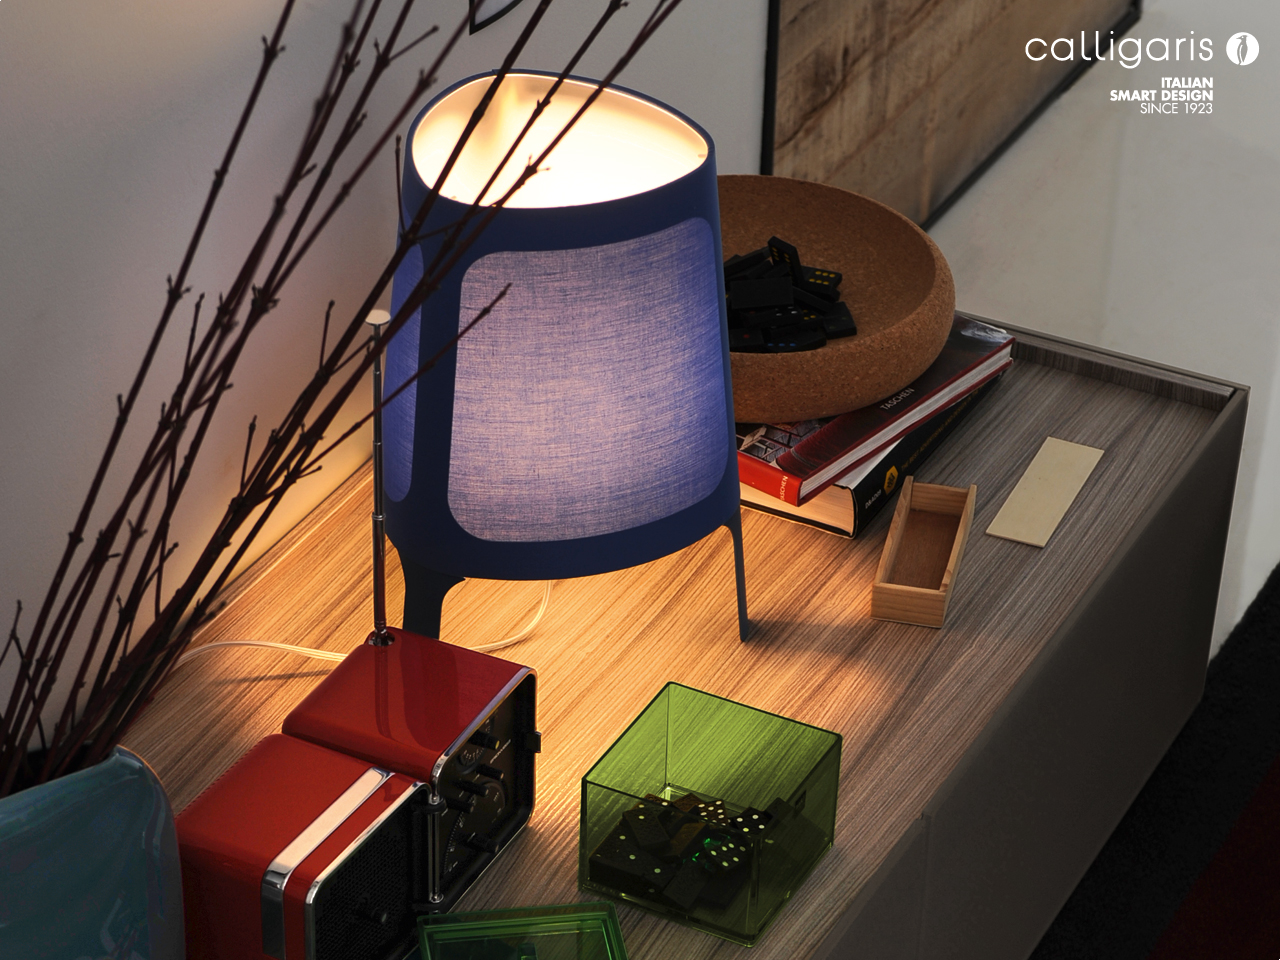 Lampada Allure by Calligaris